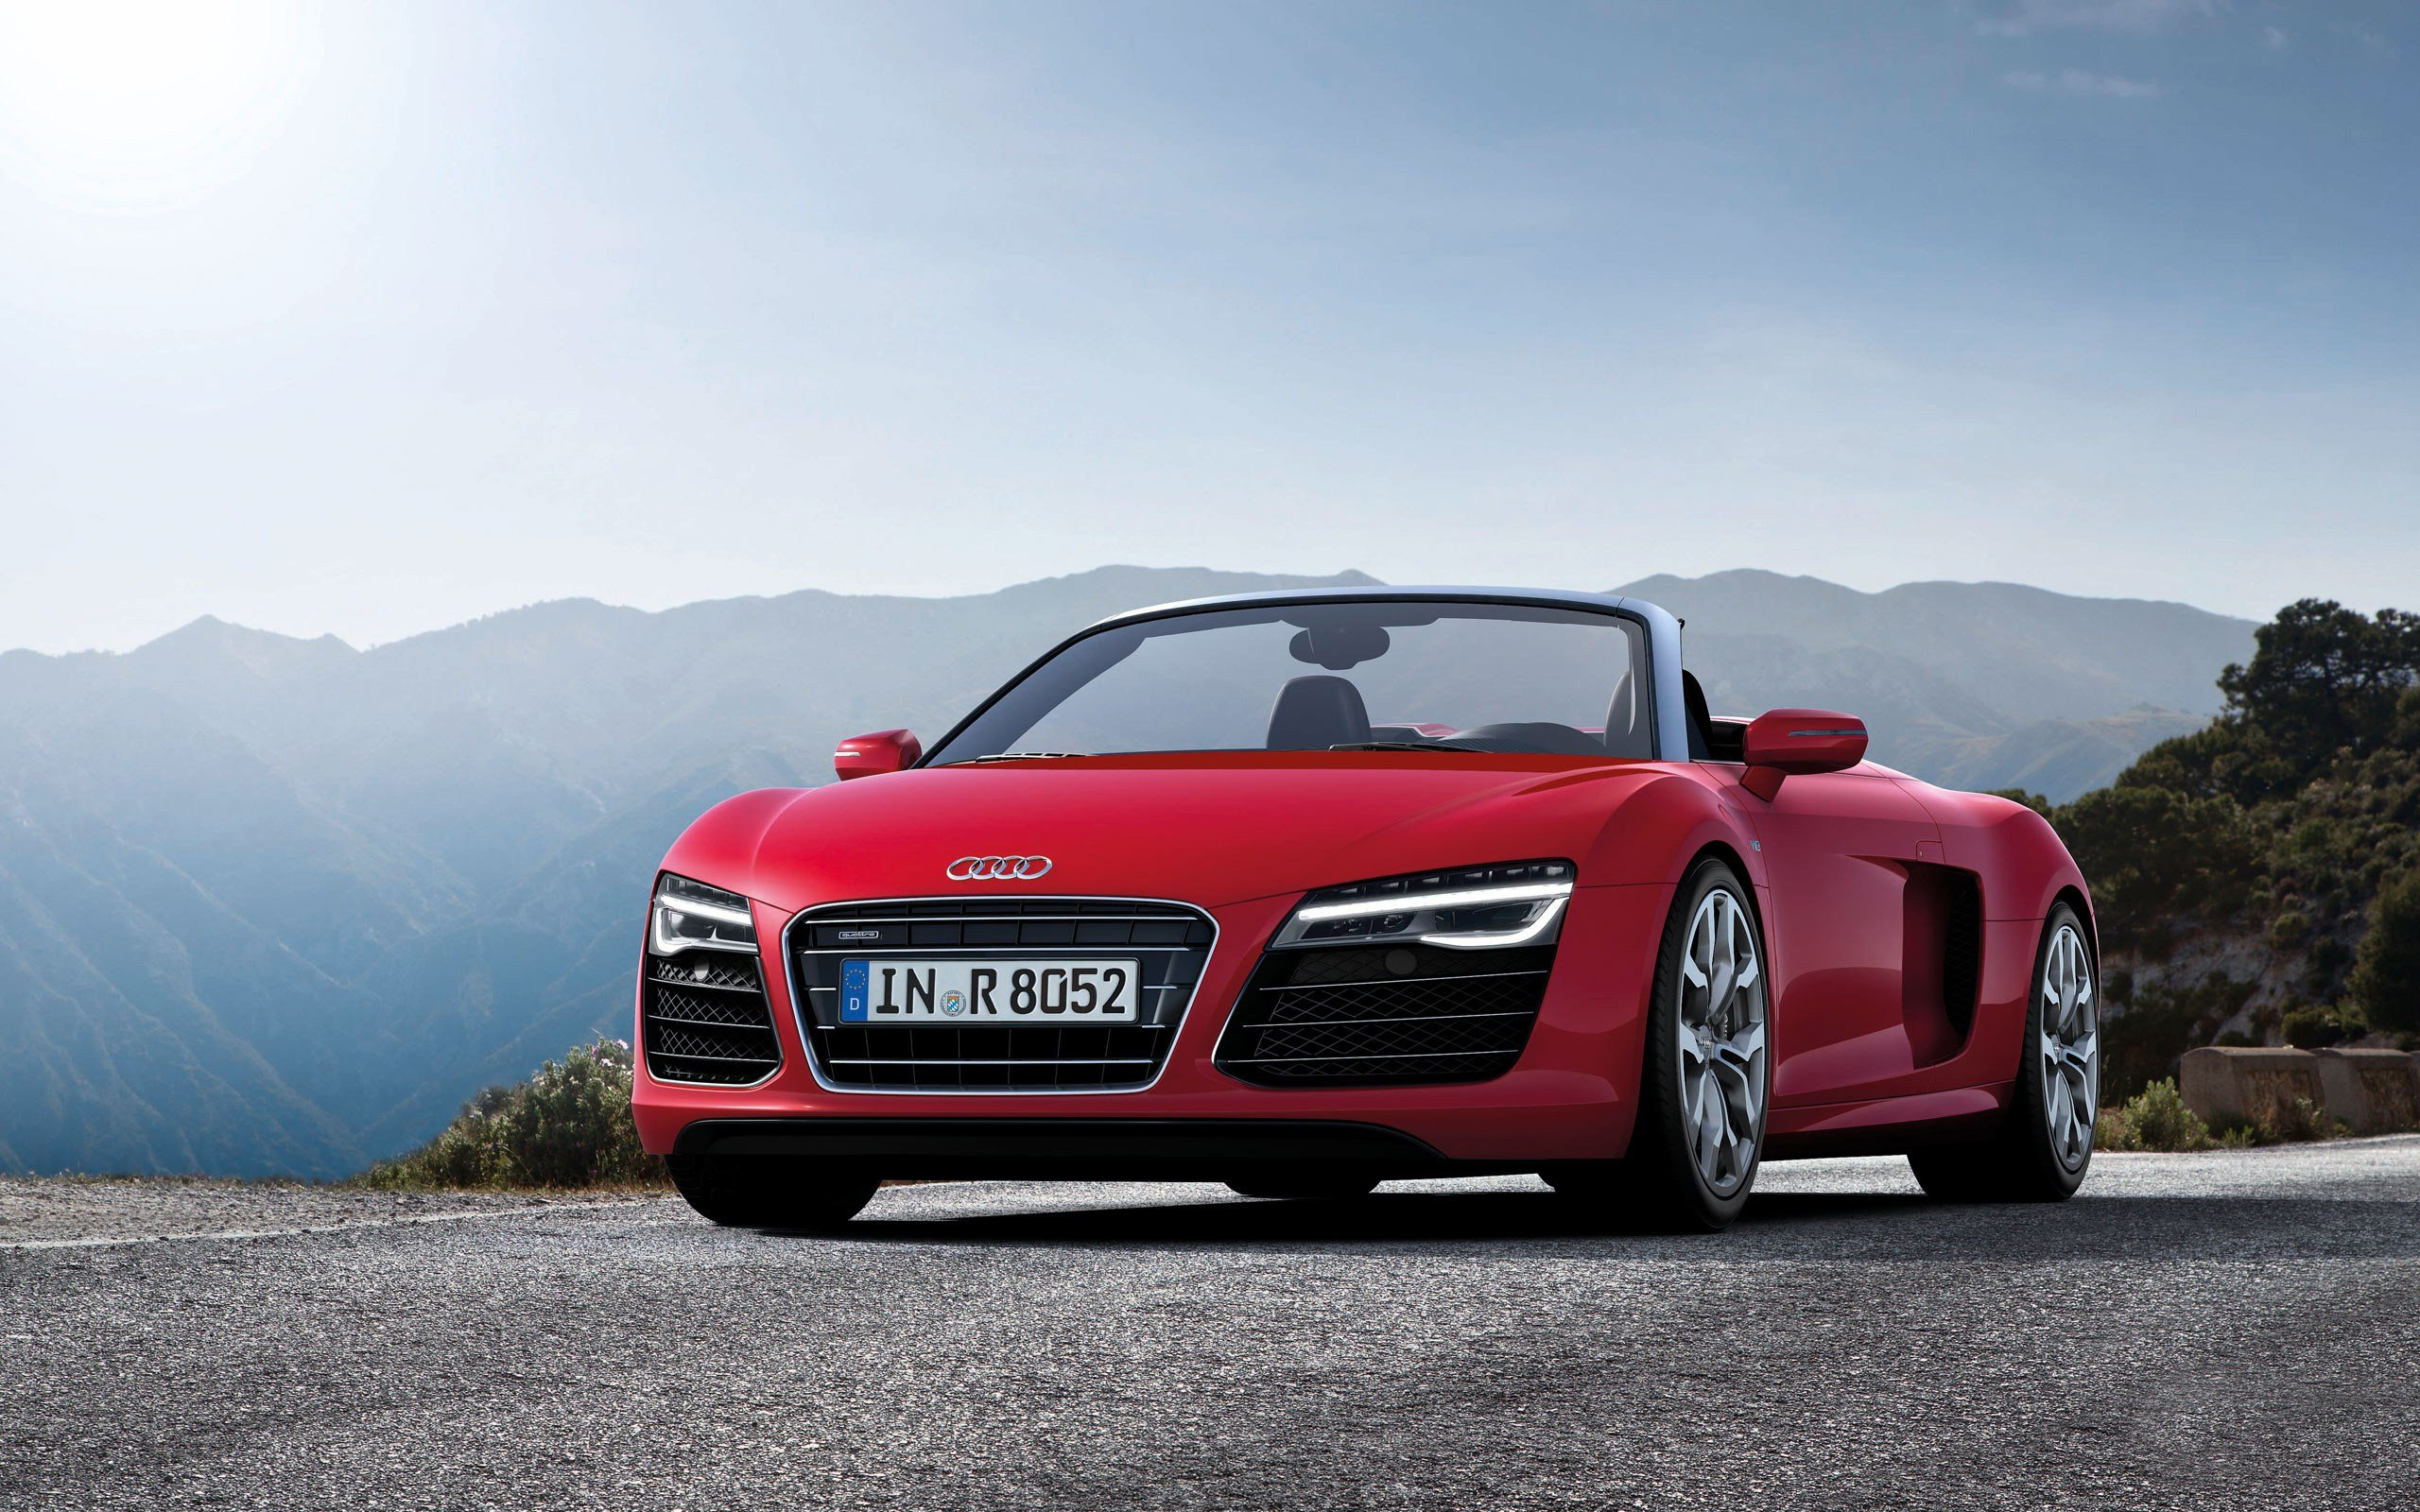 Latest Audi R8 2013 Wallpaper Hd Car Wallpapers Id 2970 Free Download